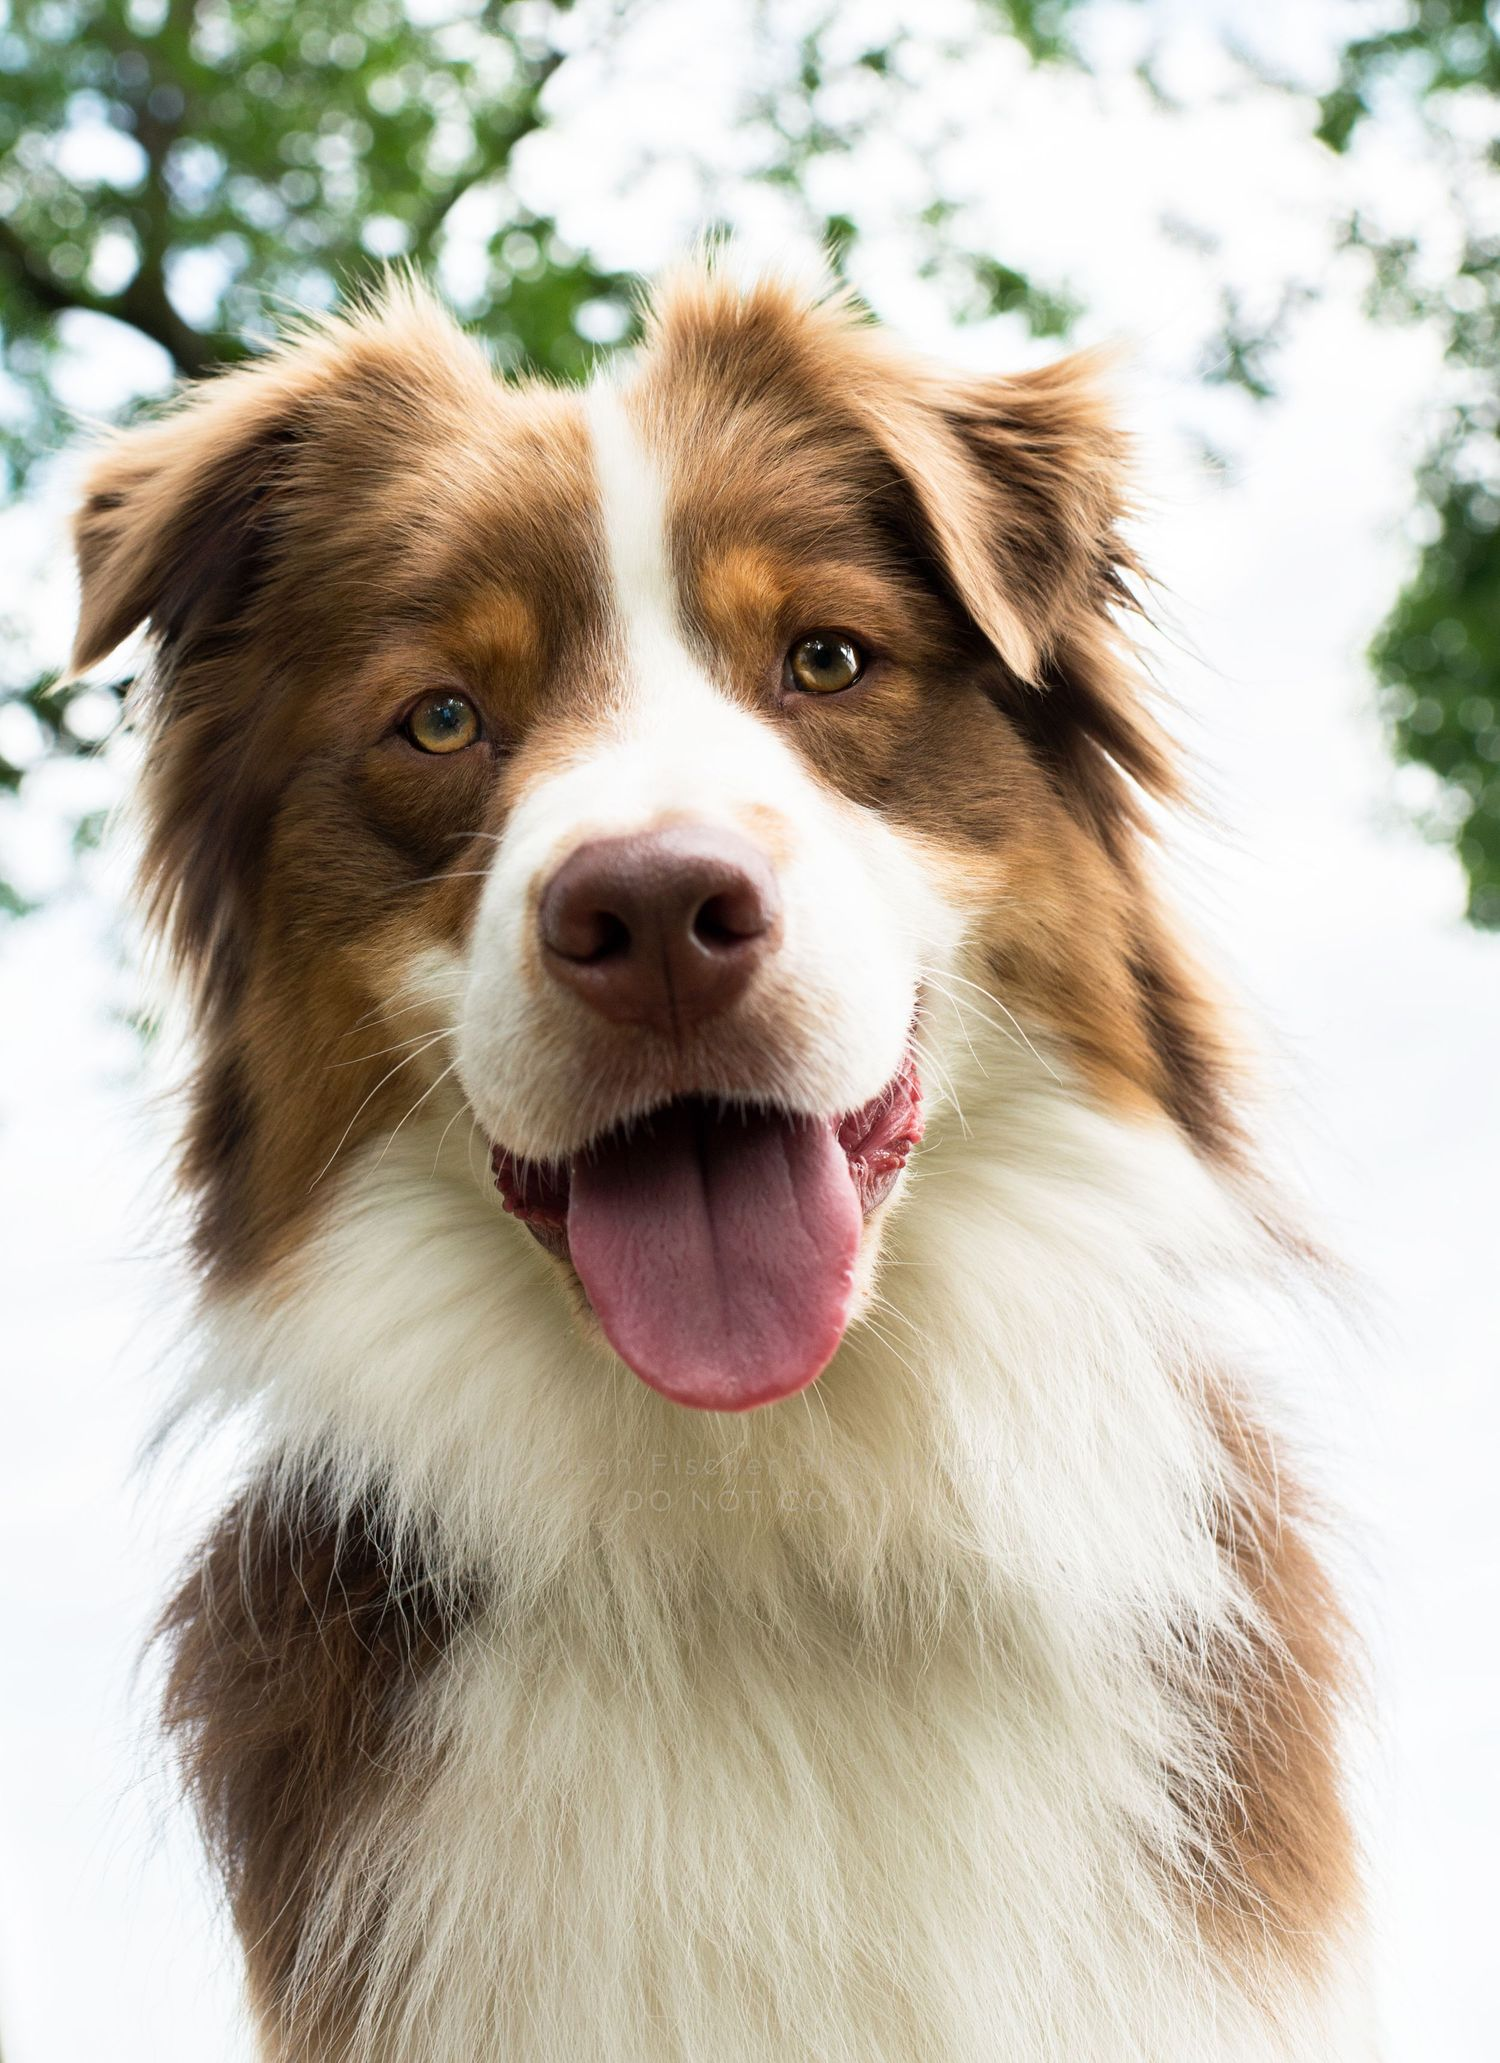 A smiling portrait of a red and white Australian Shepherd